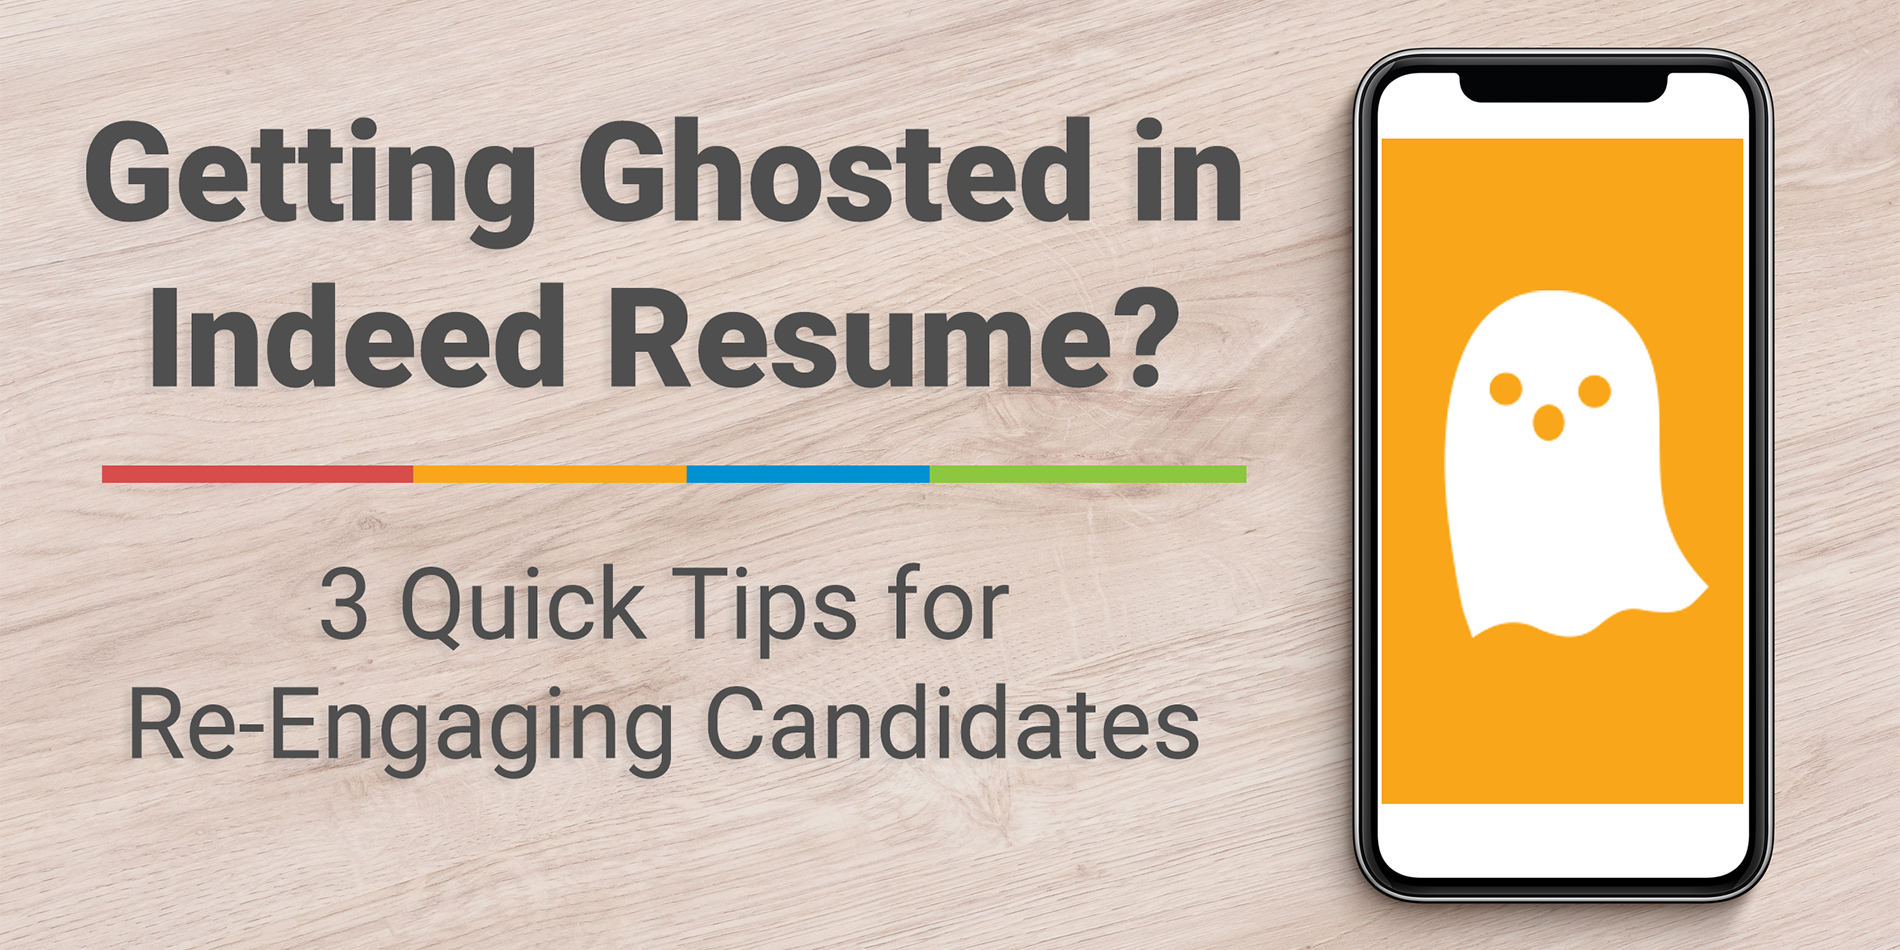 getting-ghosted-indeed-resume-candidate-reengagement